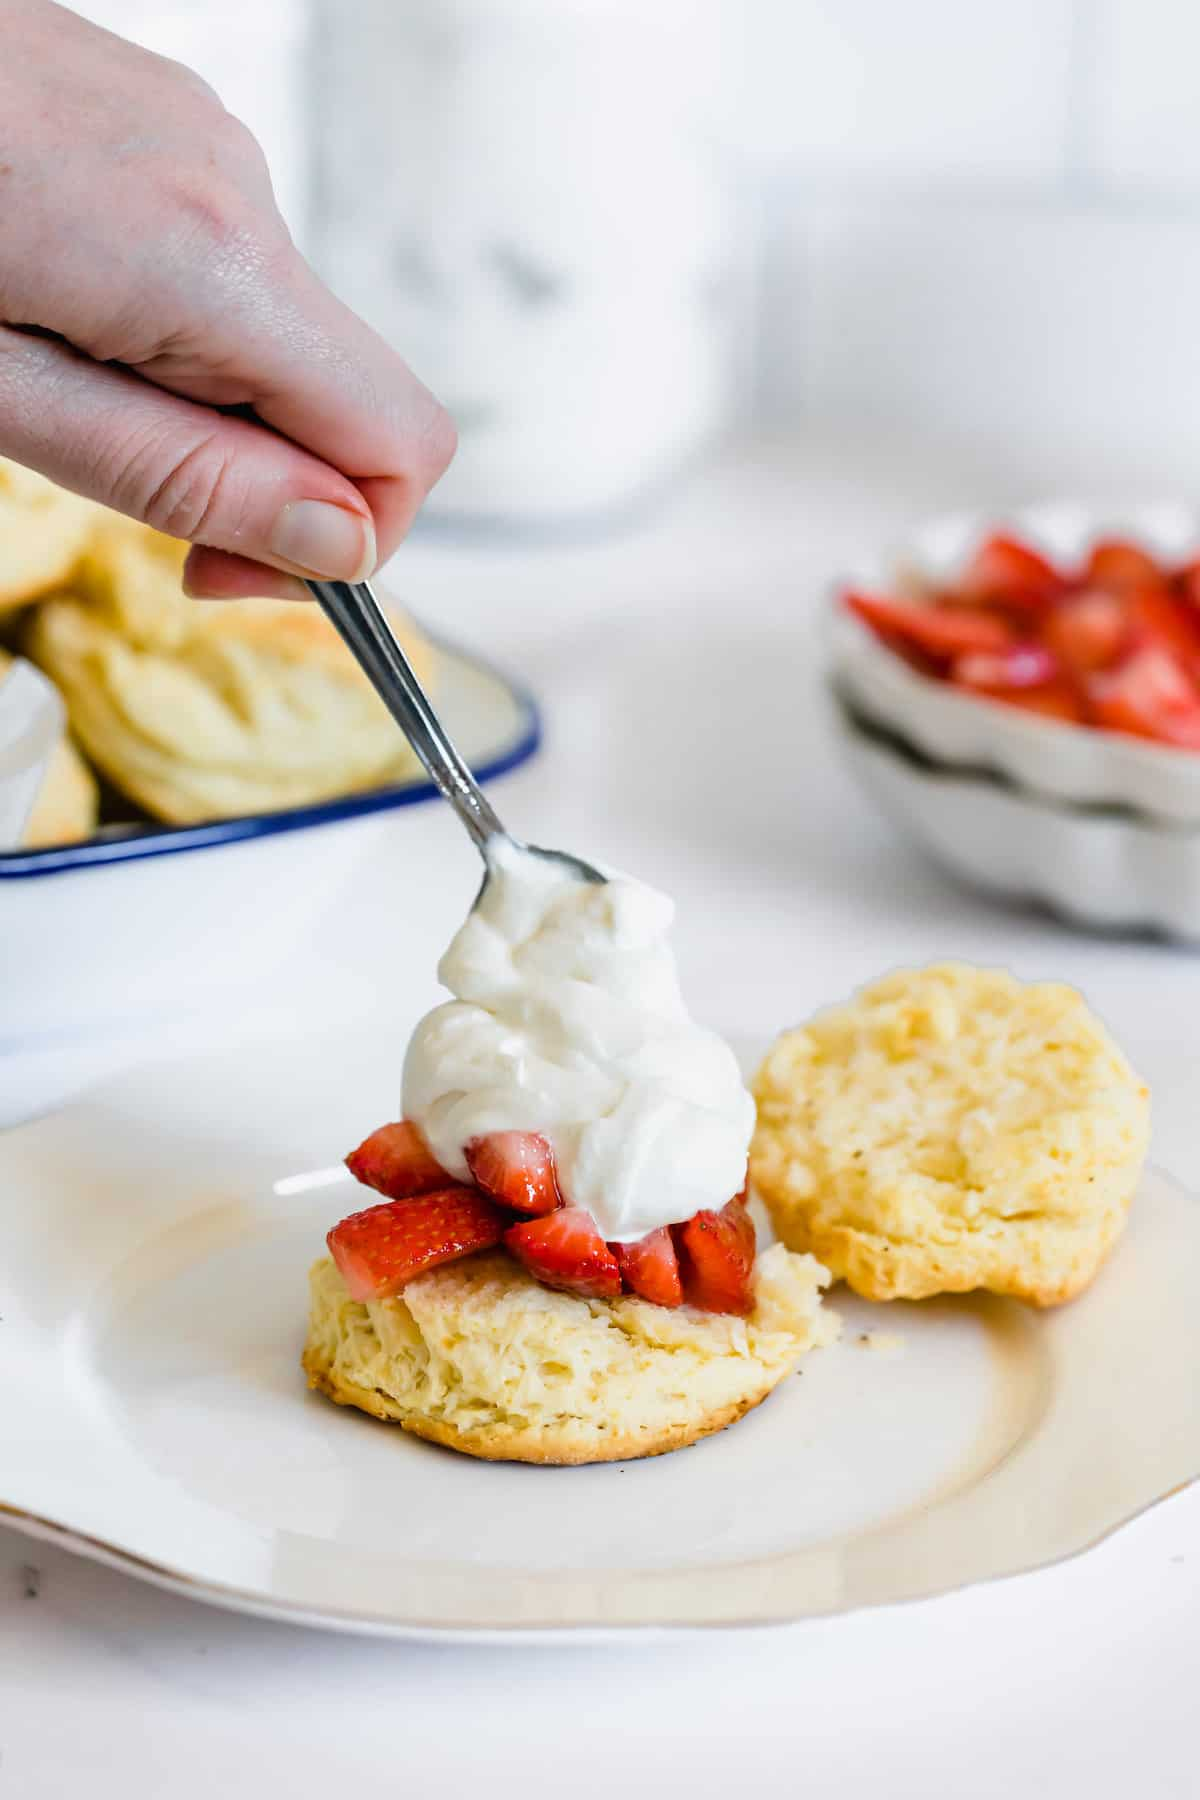 A Spoon Adding a Generous Dollop of Whipped Cream Over the Strawberry Filling on Half a Shortcake